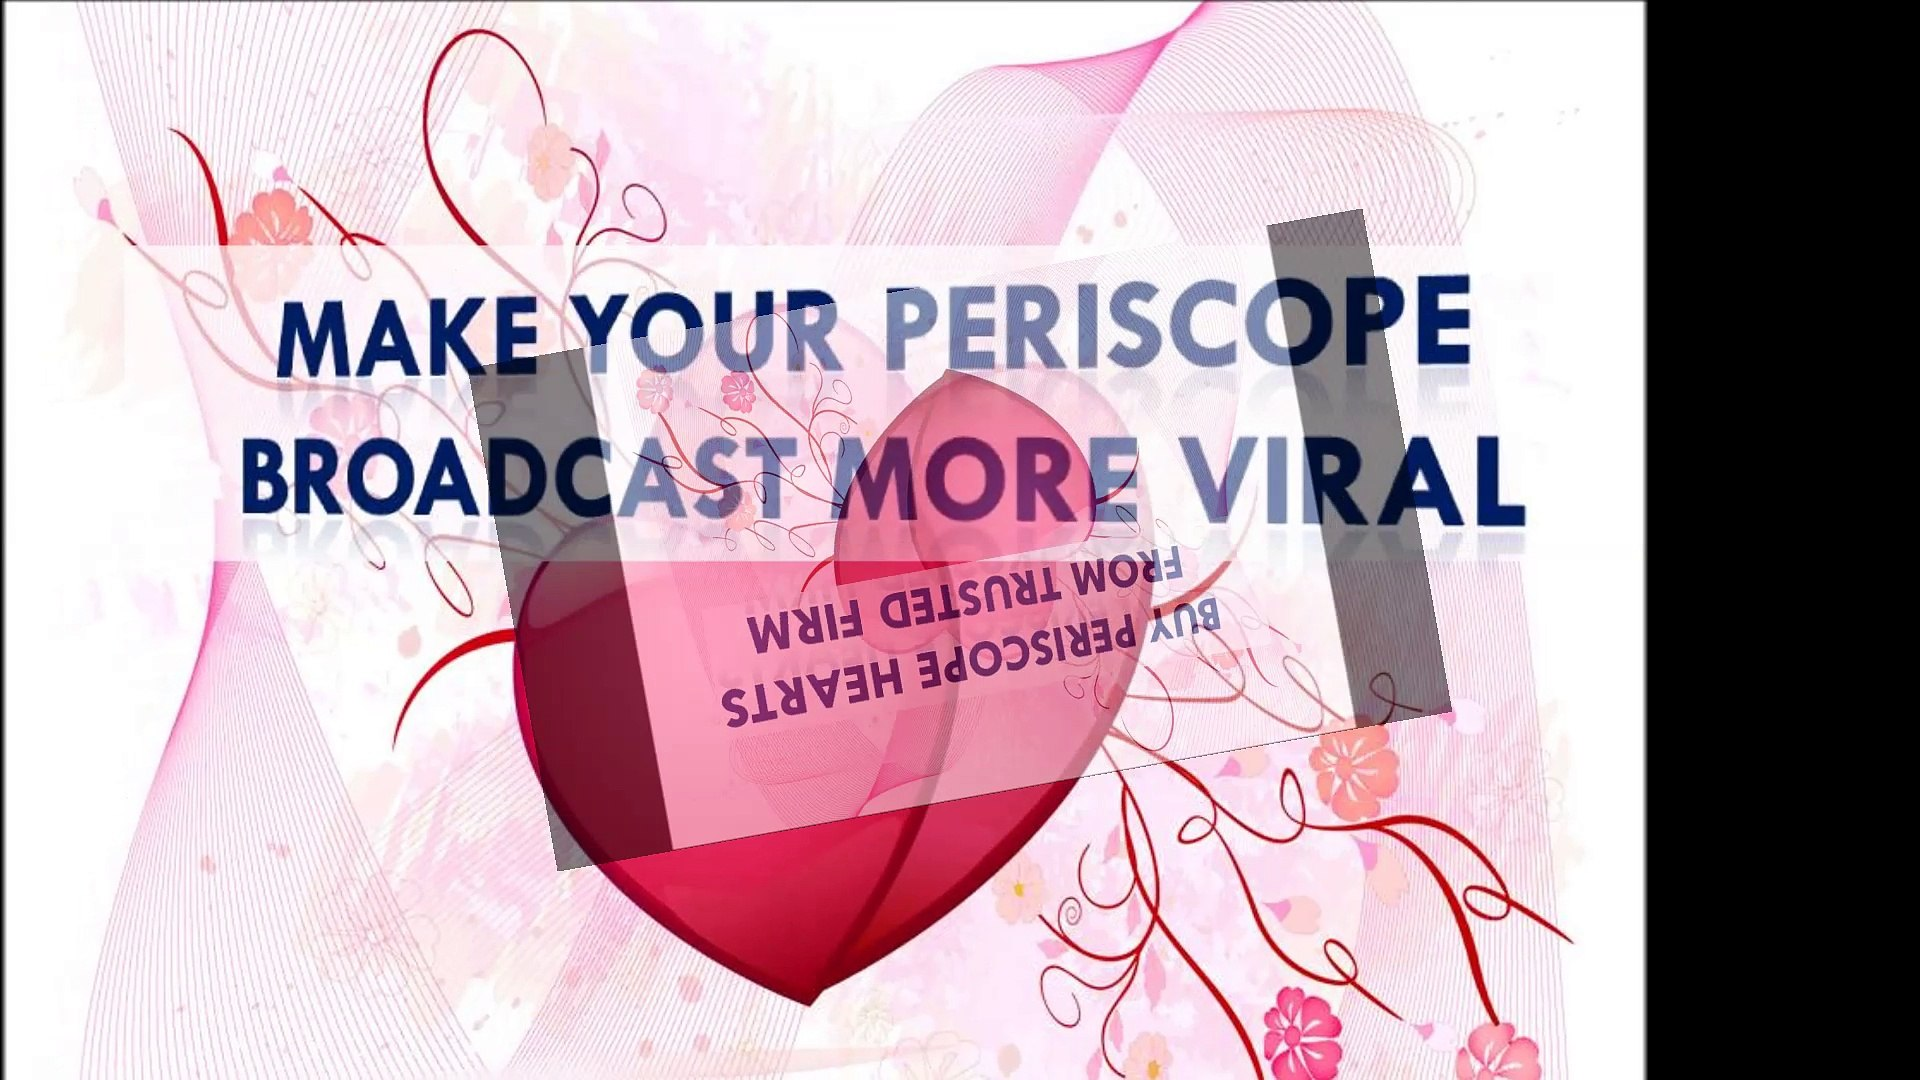 Buying Periscope Hearts To Get More Viewers For Your Periscope Broadcast